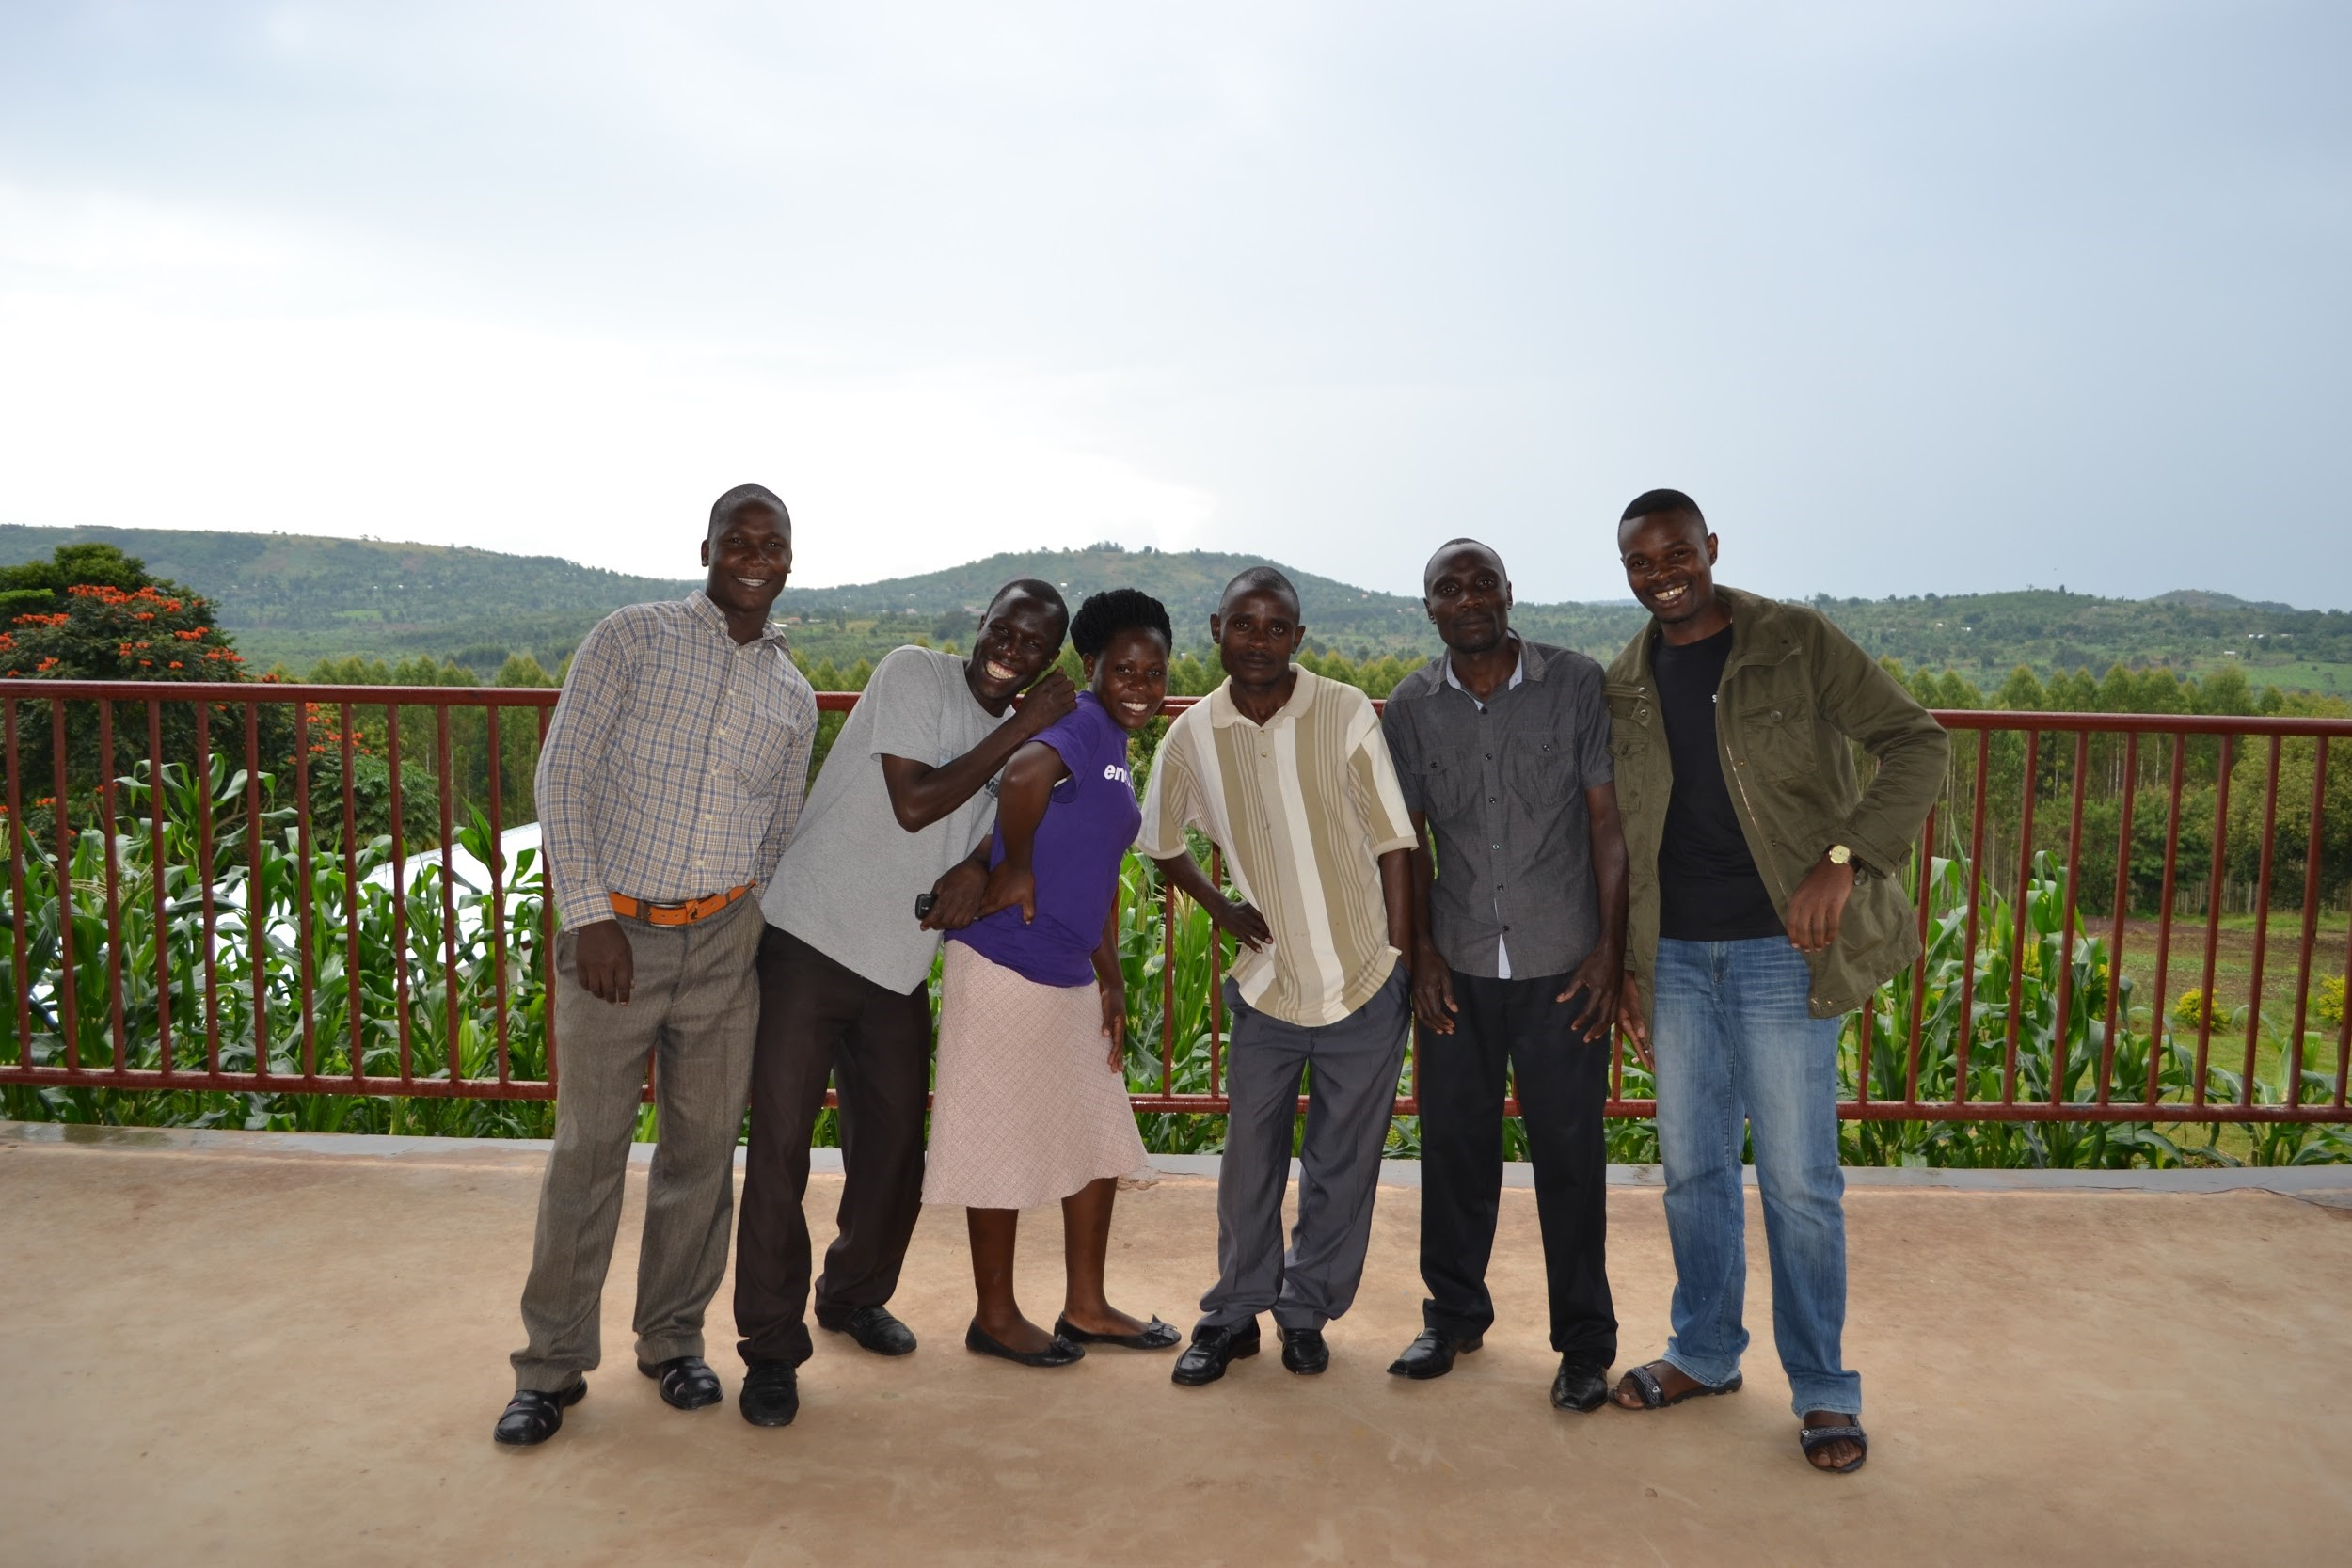 Primary 7 teachers, from left, Robert, Emmanuel, Robinah, Godfrey, Nelson and Jerome